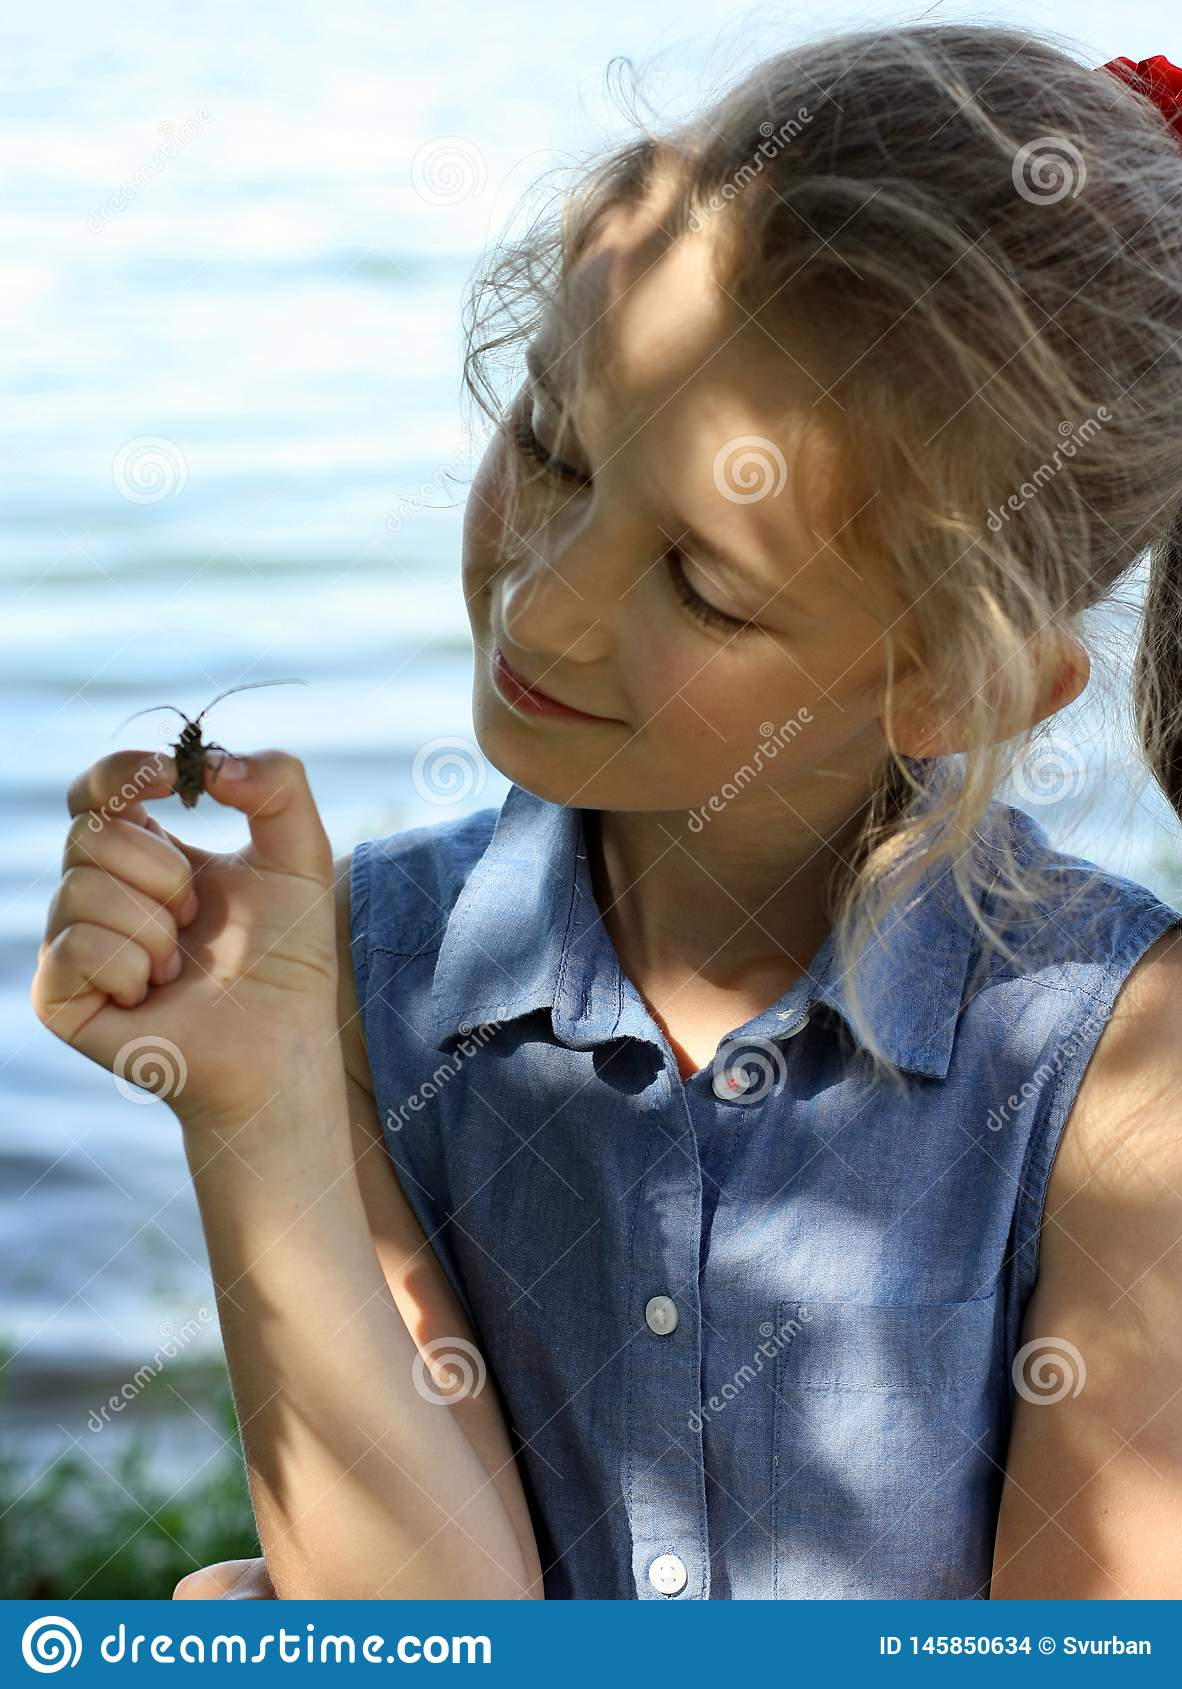 The girl holds a beetle on a hand